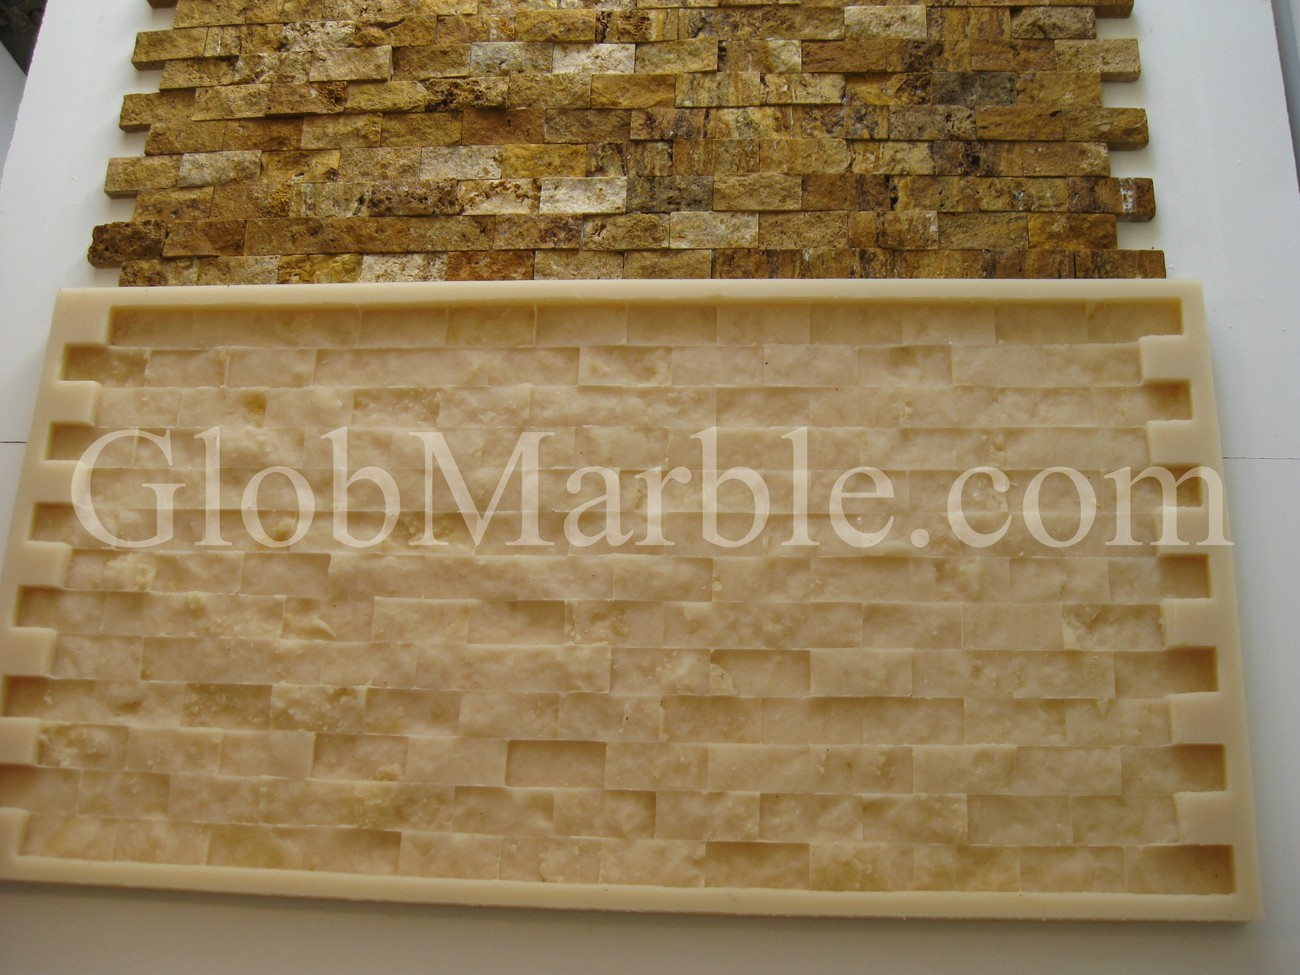 Mosaic Stone Cement : Mosaic stone rubber mold concrete veneer paver other